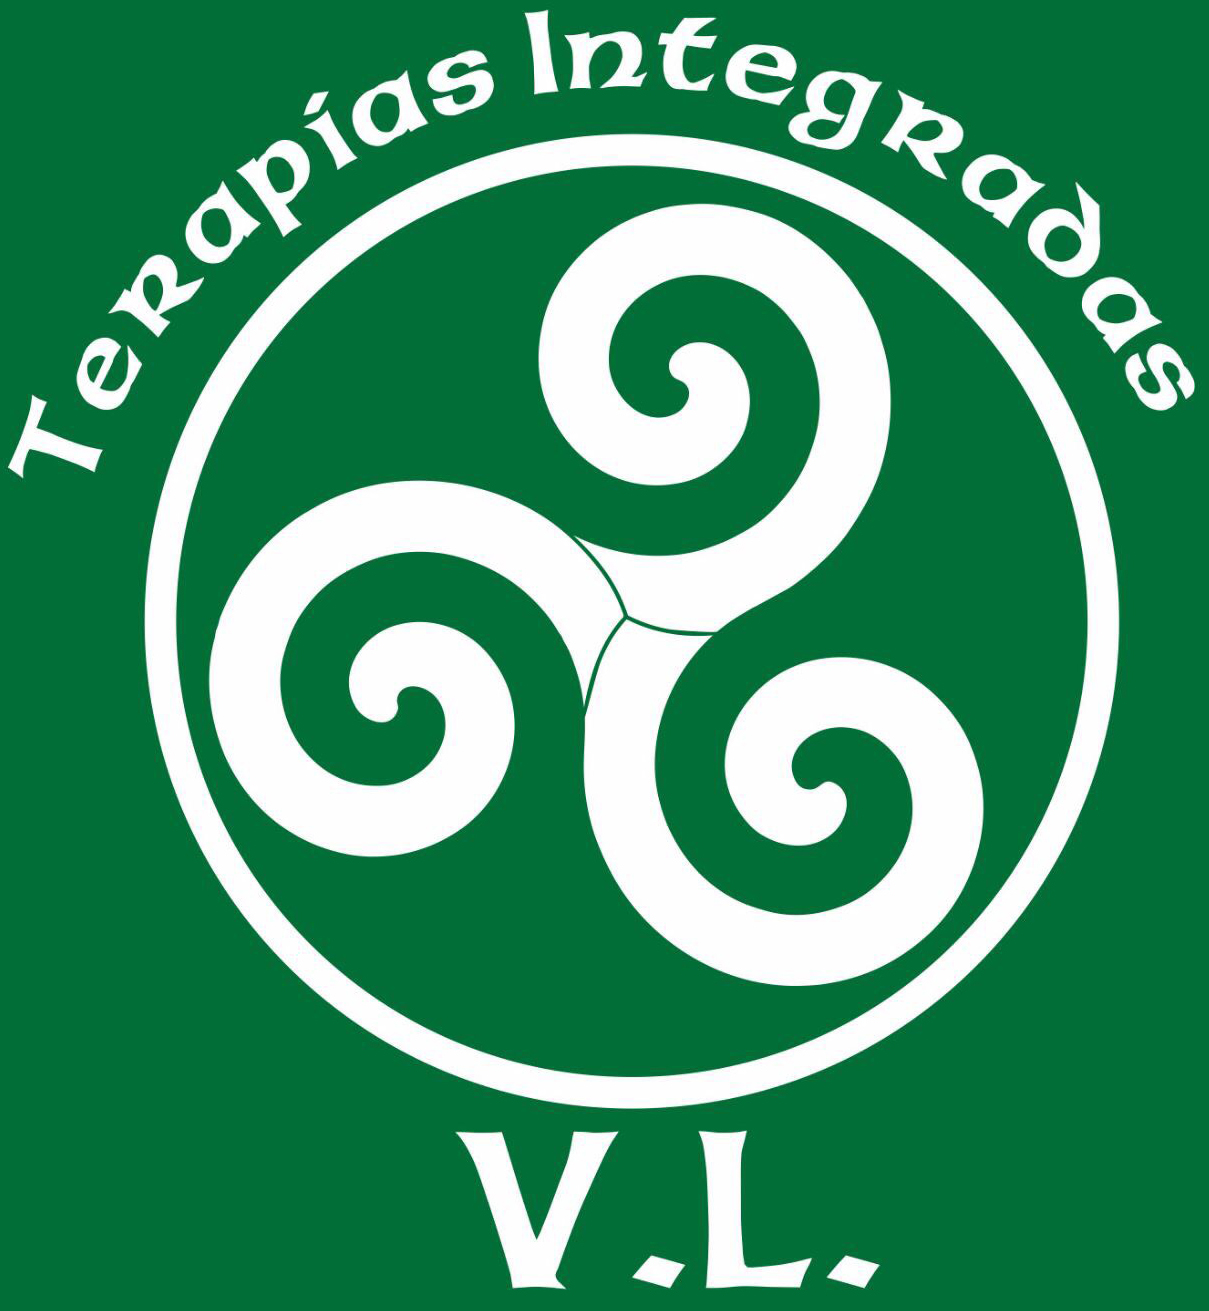 Terapias Integradas Vilaxoan S.L.